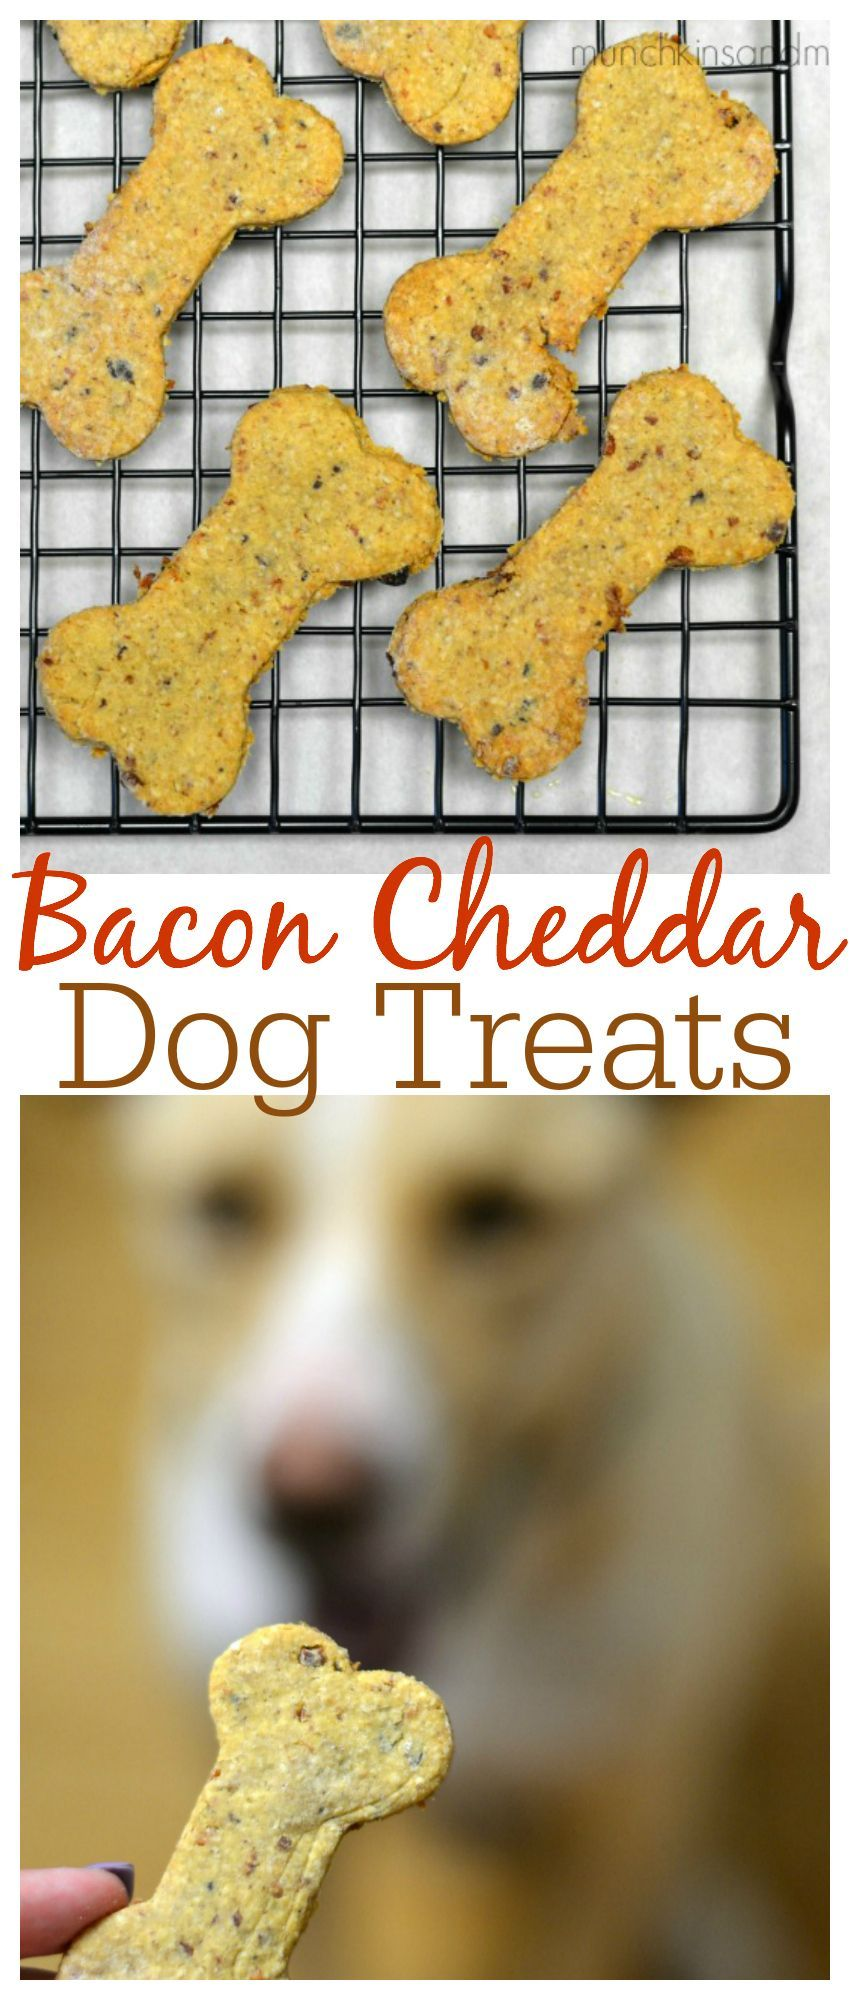 Cheddar Dog Treats Easy recipe for bacon cheddar homemade dog treats! Only 4 ingredients & gluten free!Easy recipe for bacon cheddar homemade dog treats! Only 4 ingredients & gluten free!